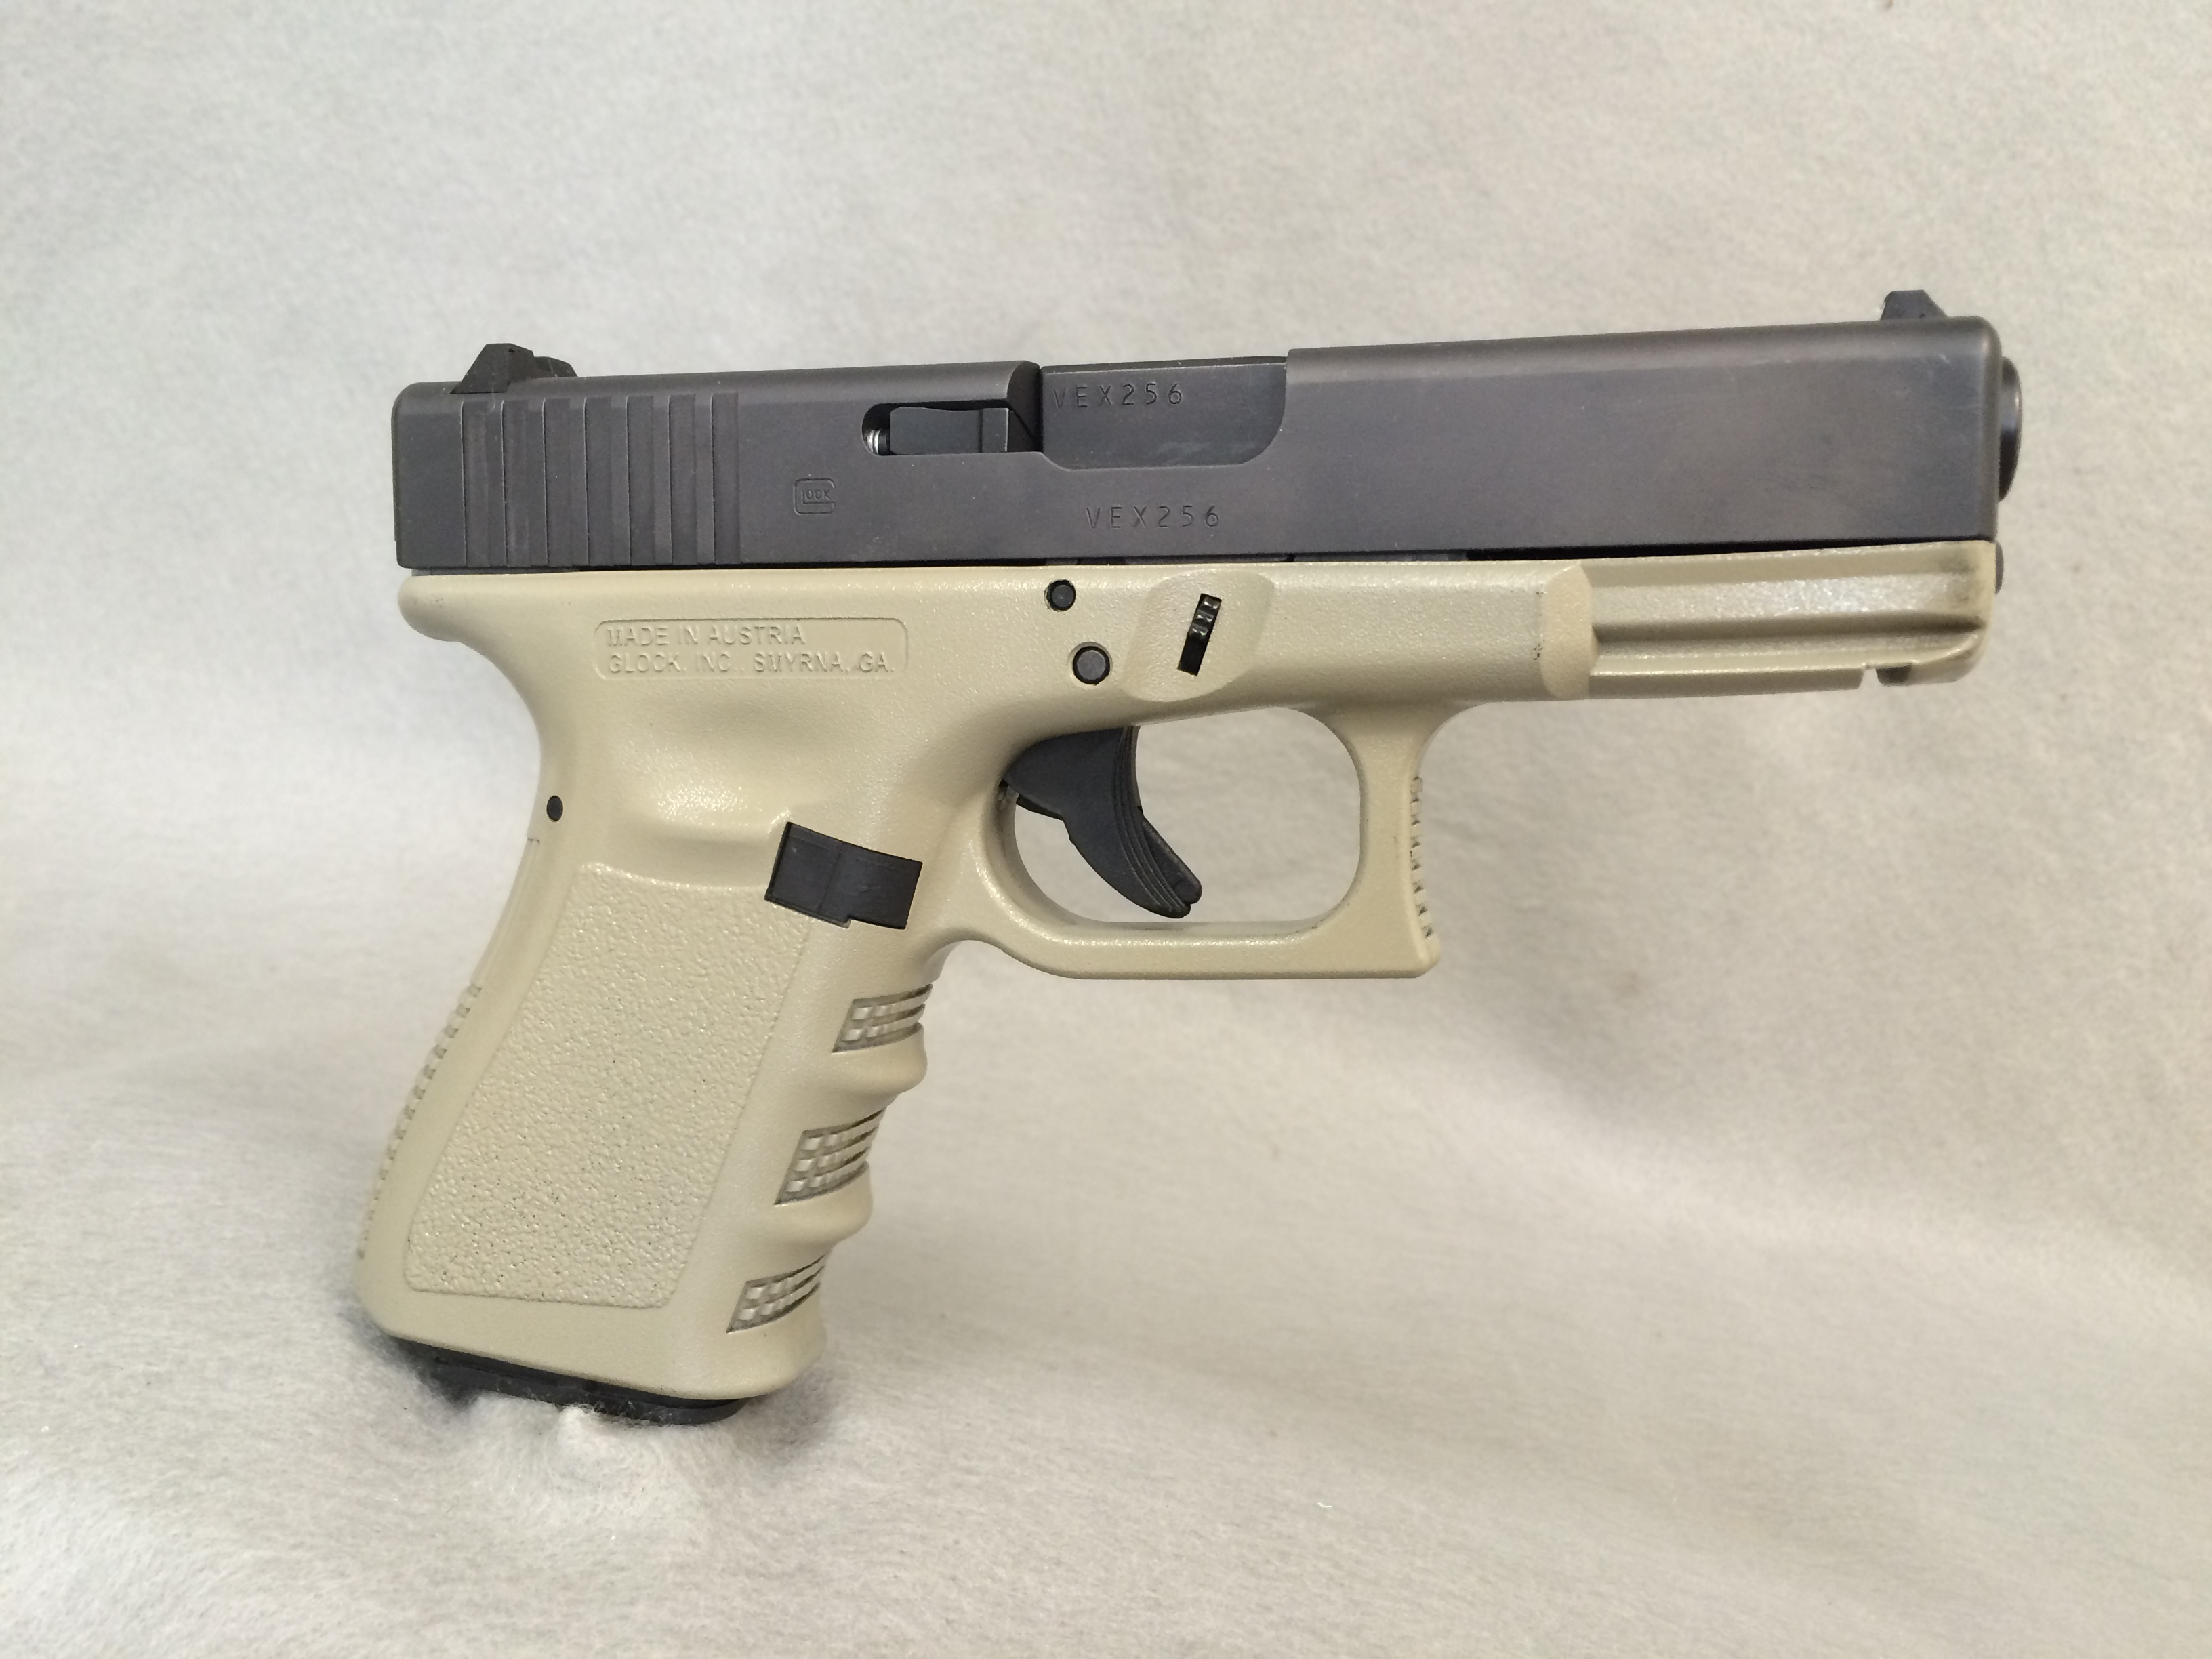 Glock 19 with Blackhawk Coyote Tan DuraCoat Frame